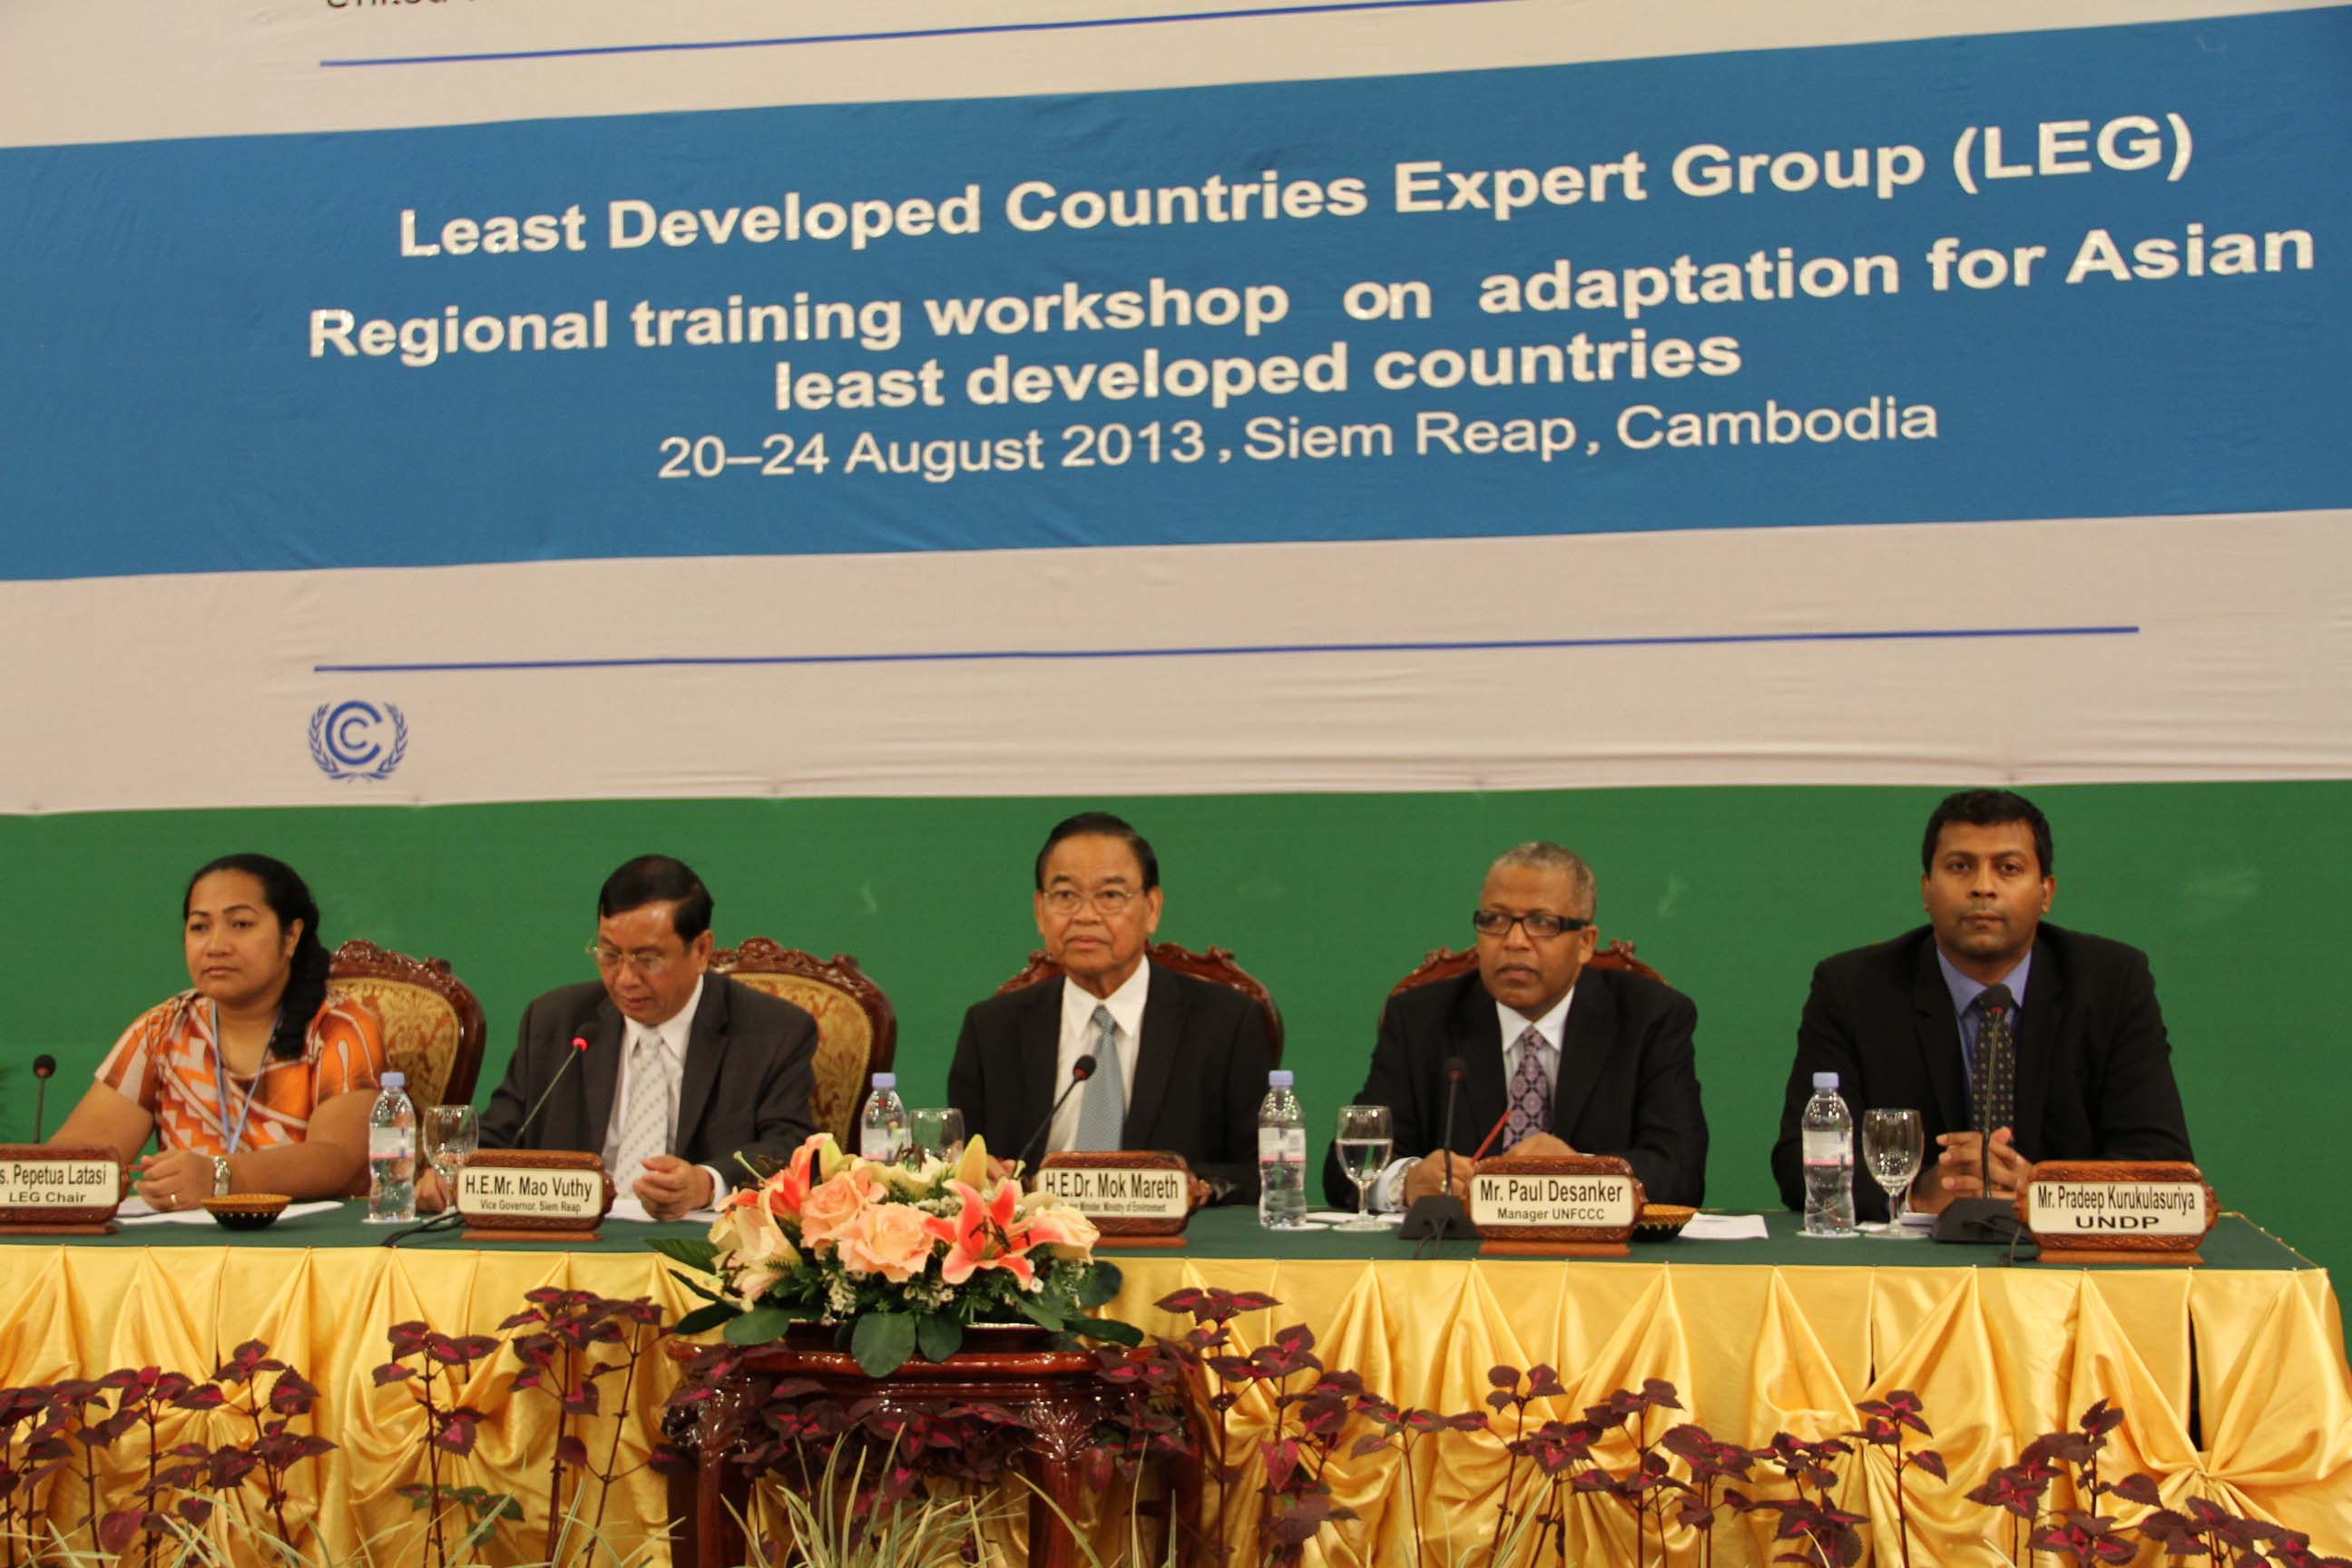 LDCs meeting at Siem Reap August 2013